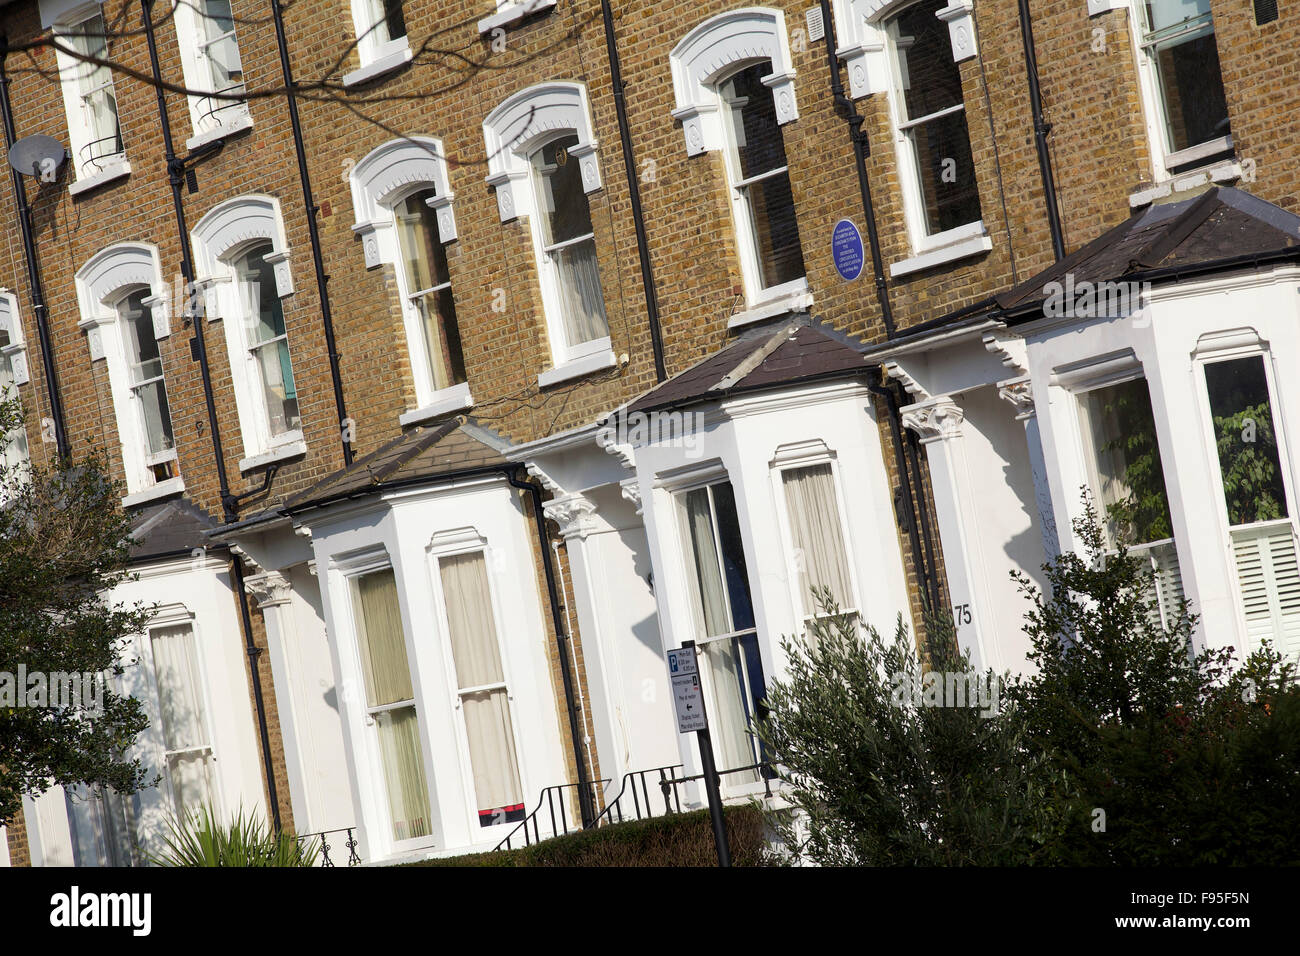 Hammersmith, London. Angled view of row houses in a residential street in Hammersmith. Bay windows. Brick used on - Stock Image